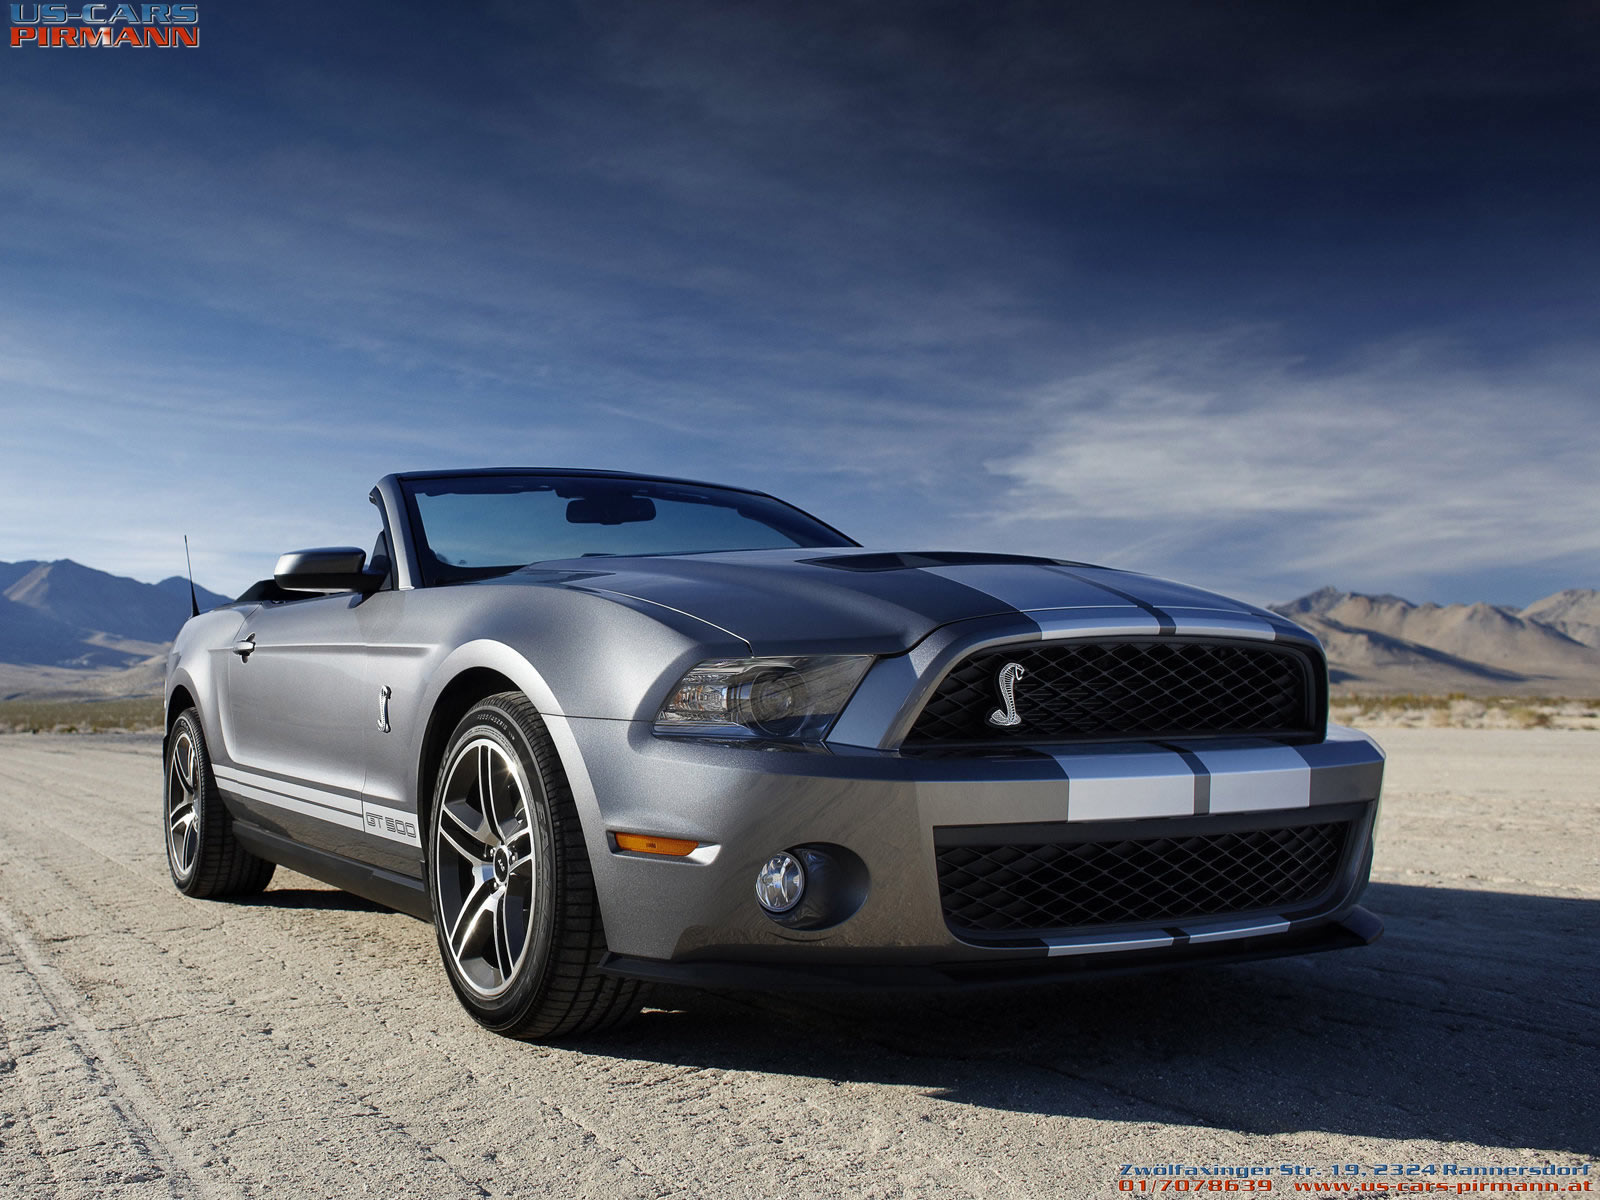 Ford mustang shelby gt 500 2010 1600x1200 wallpaper